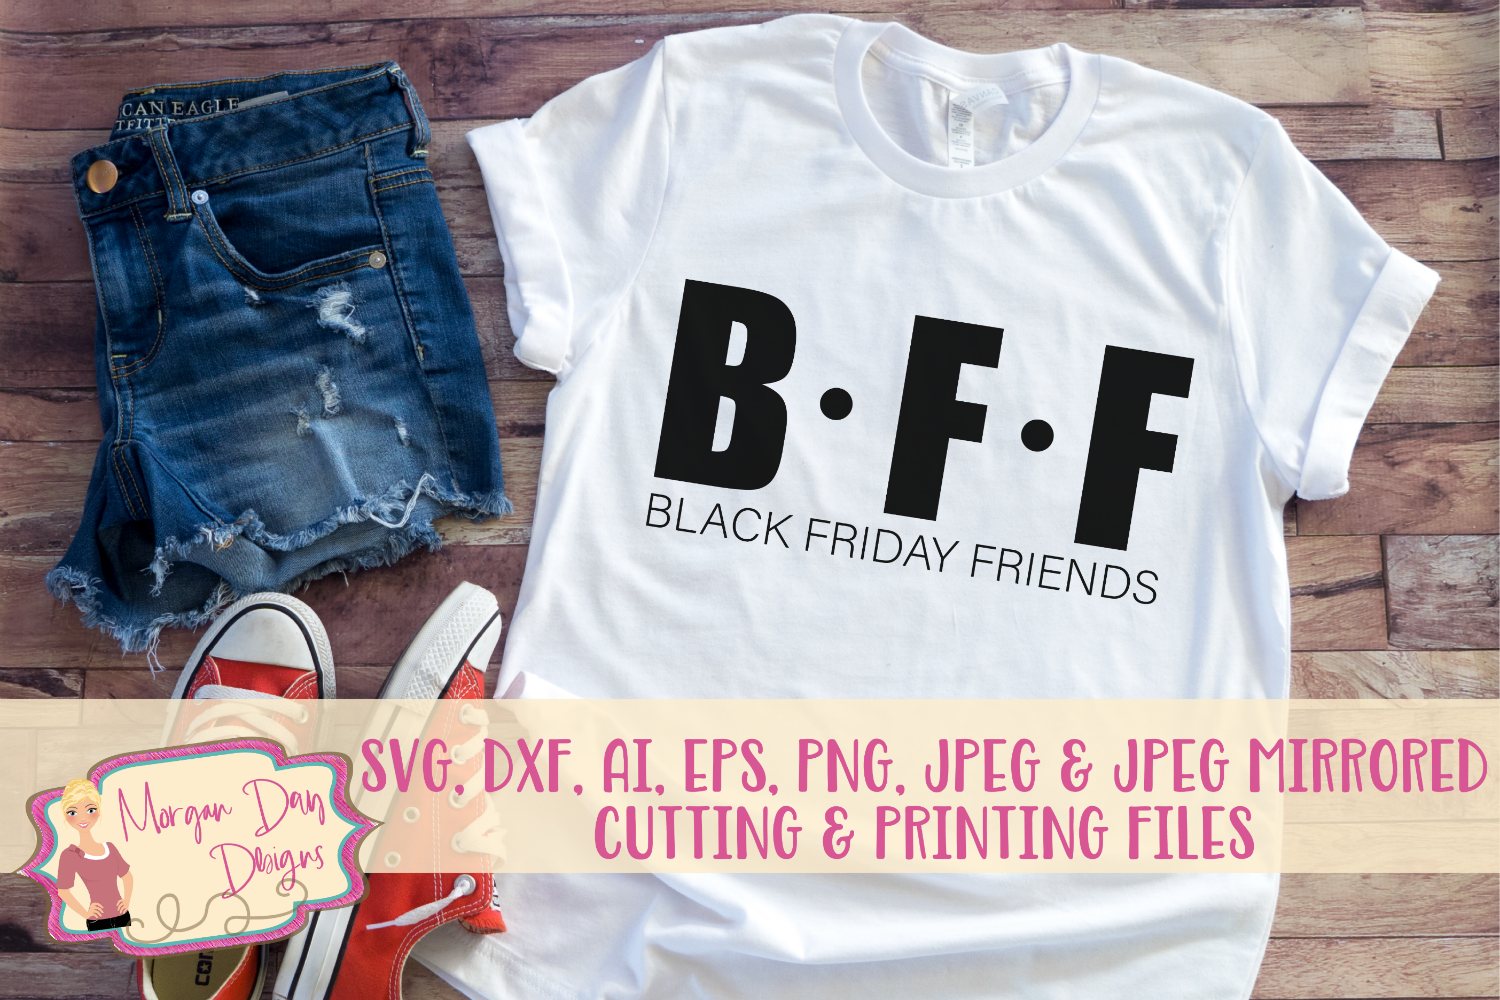 Black Friday Friends SVG, DXF, AI, EPS, PNG, JPEG example image 1